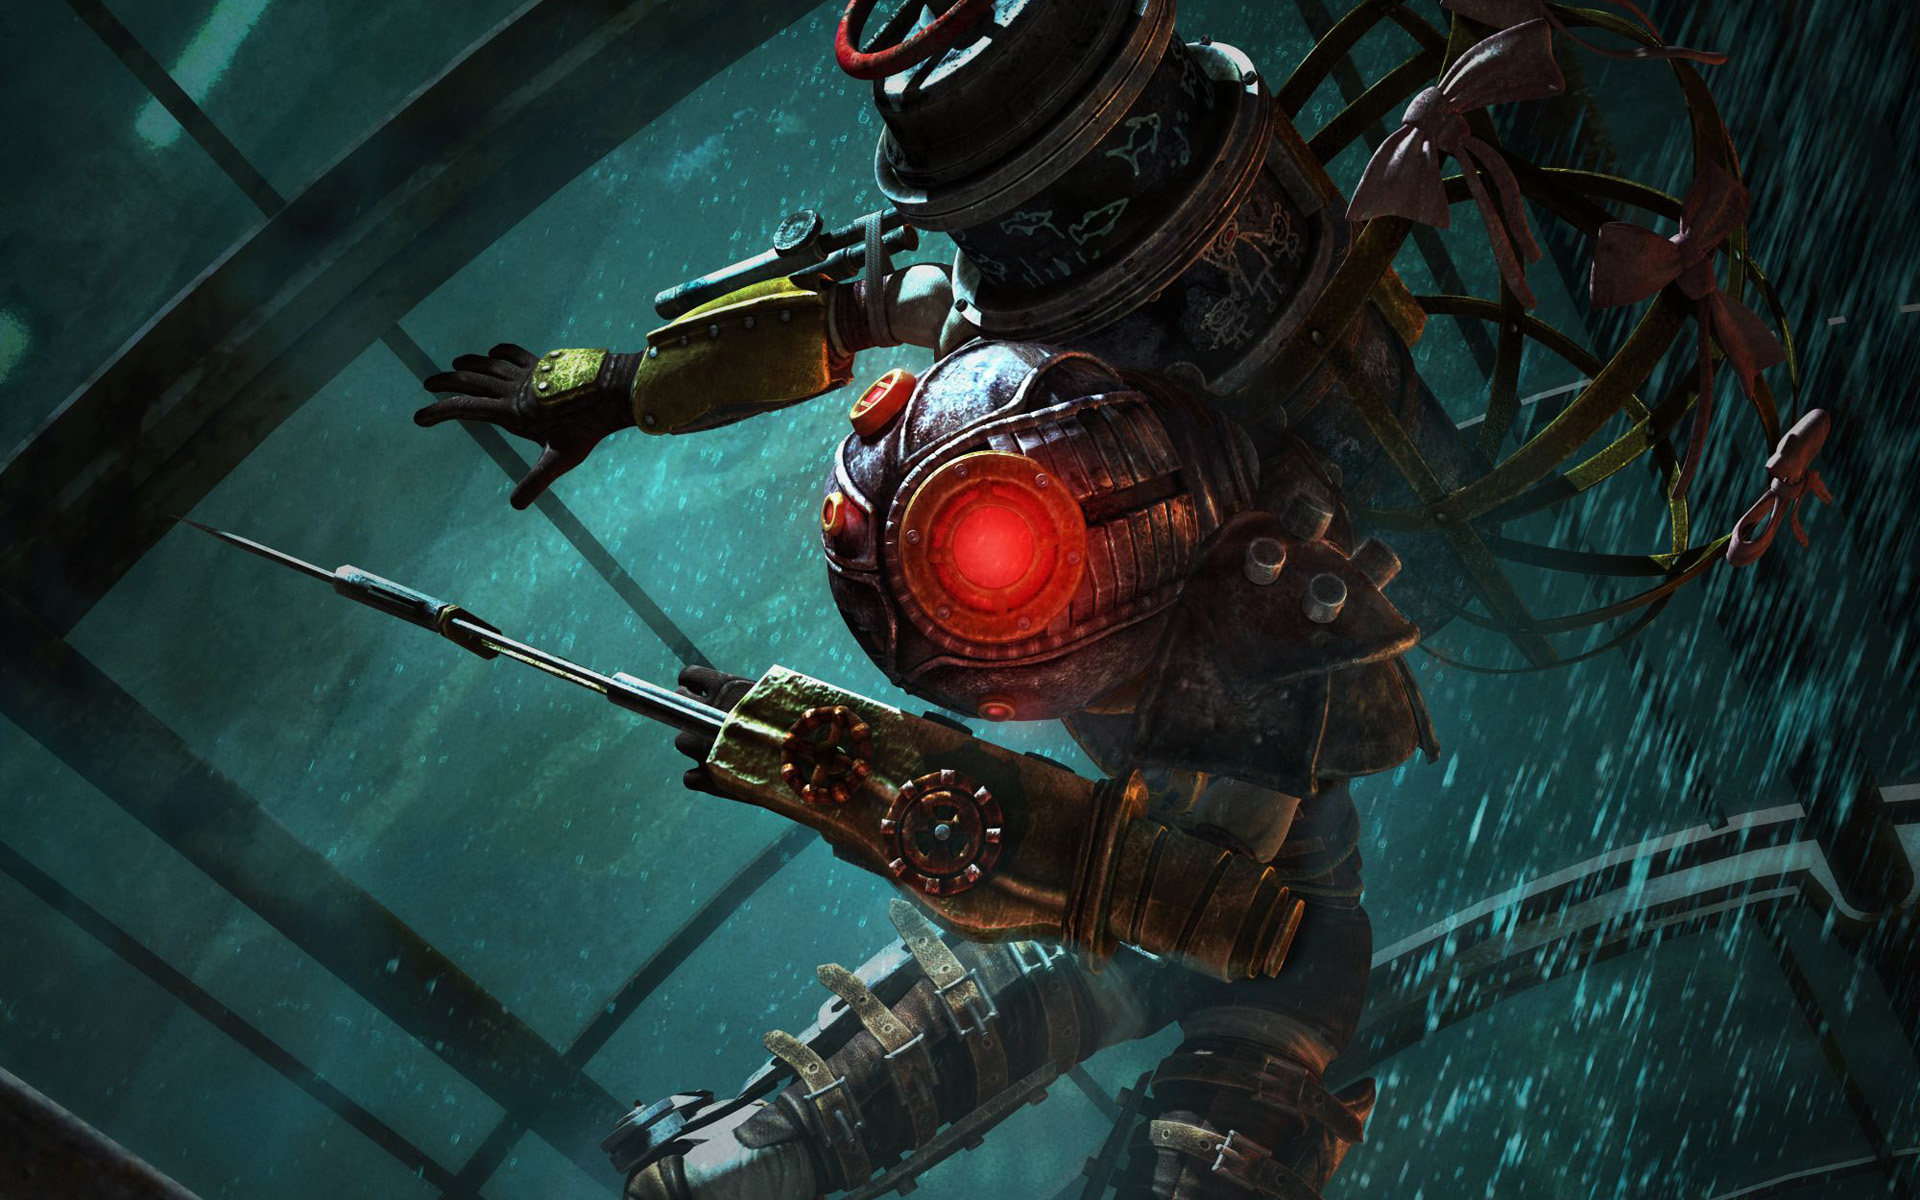 Bioshock Wallpaper 46836 1920x1200 Px HDWallSource